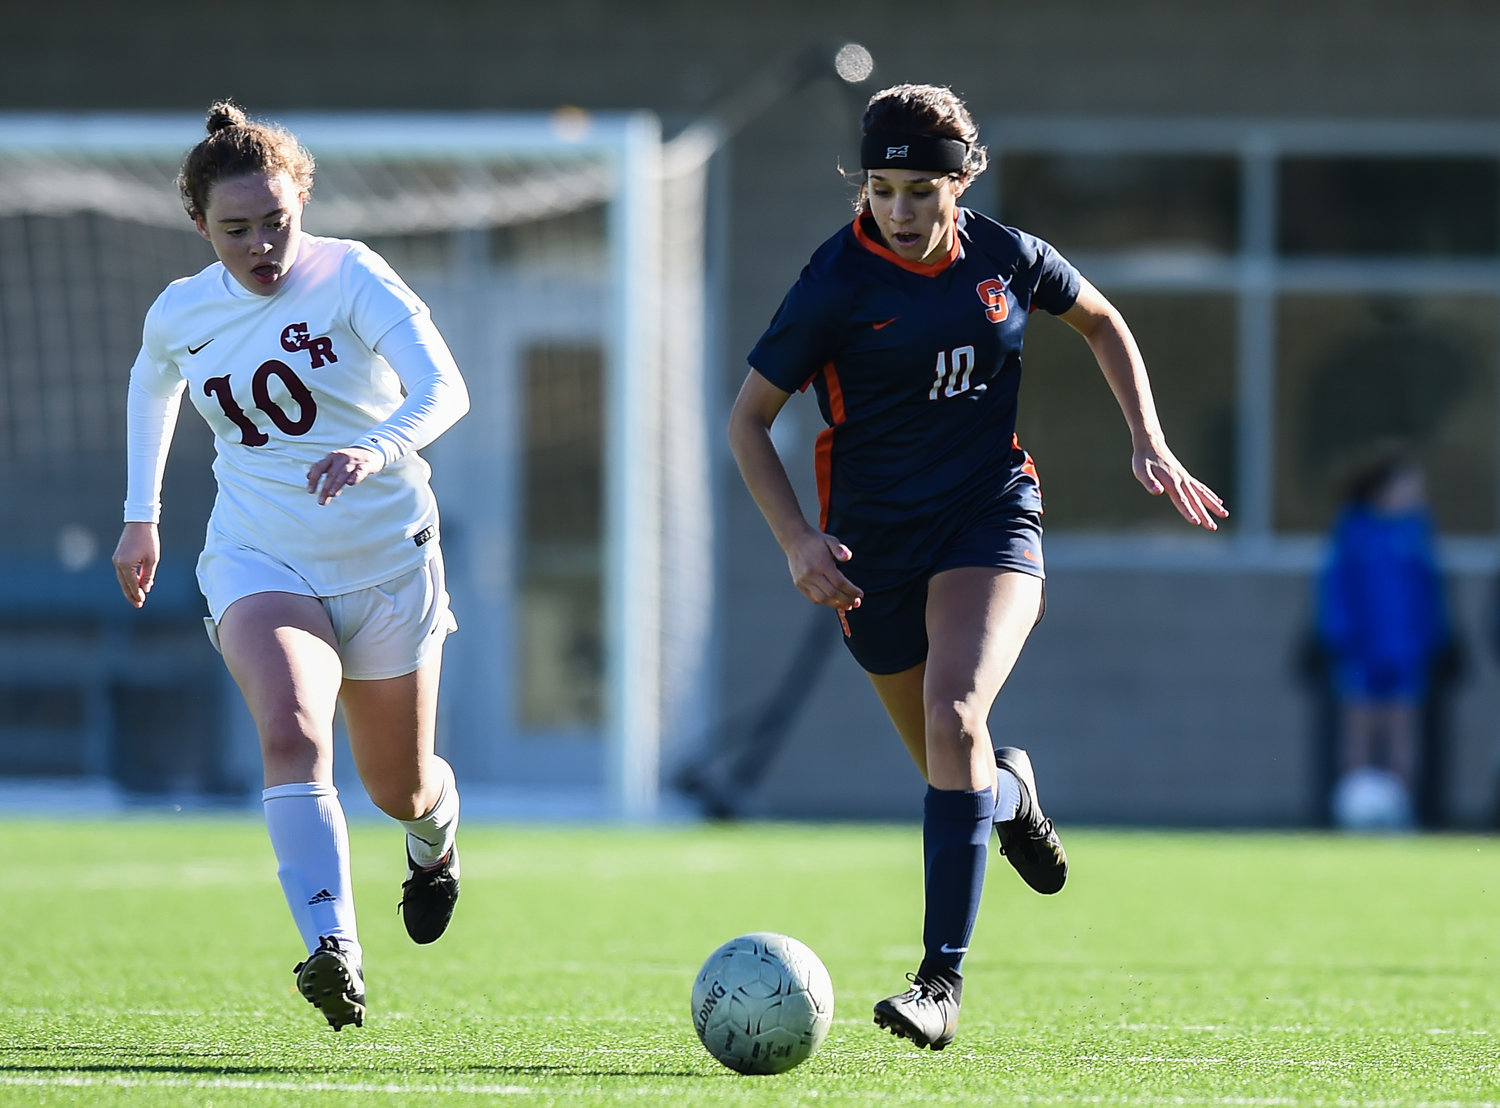 Katy Tx. Jan. 11, 2020: Seven Lakes Arianna Ghafari (10) advances the ball during the I-10 Soccer Shootout in a match between Seven Lakes and George Ranch at Legacy Stadium in Katy. (Photo by Mark Goodman / Katy Time)